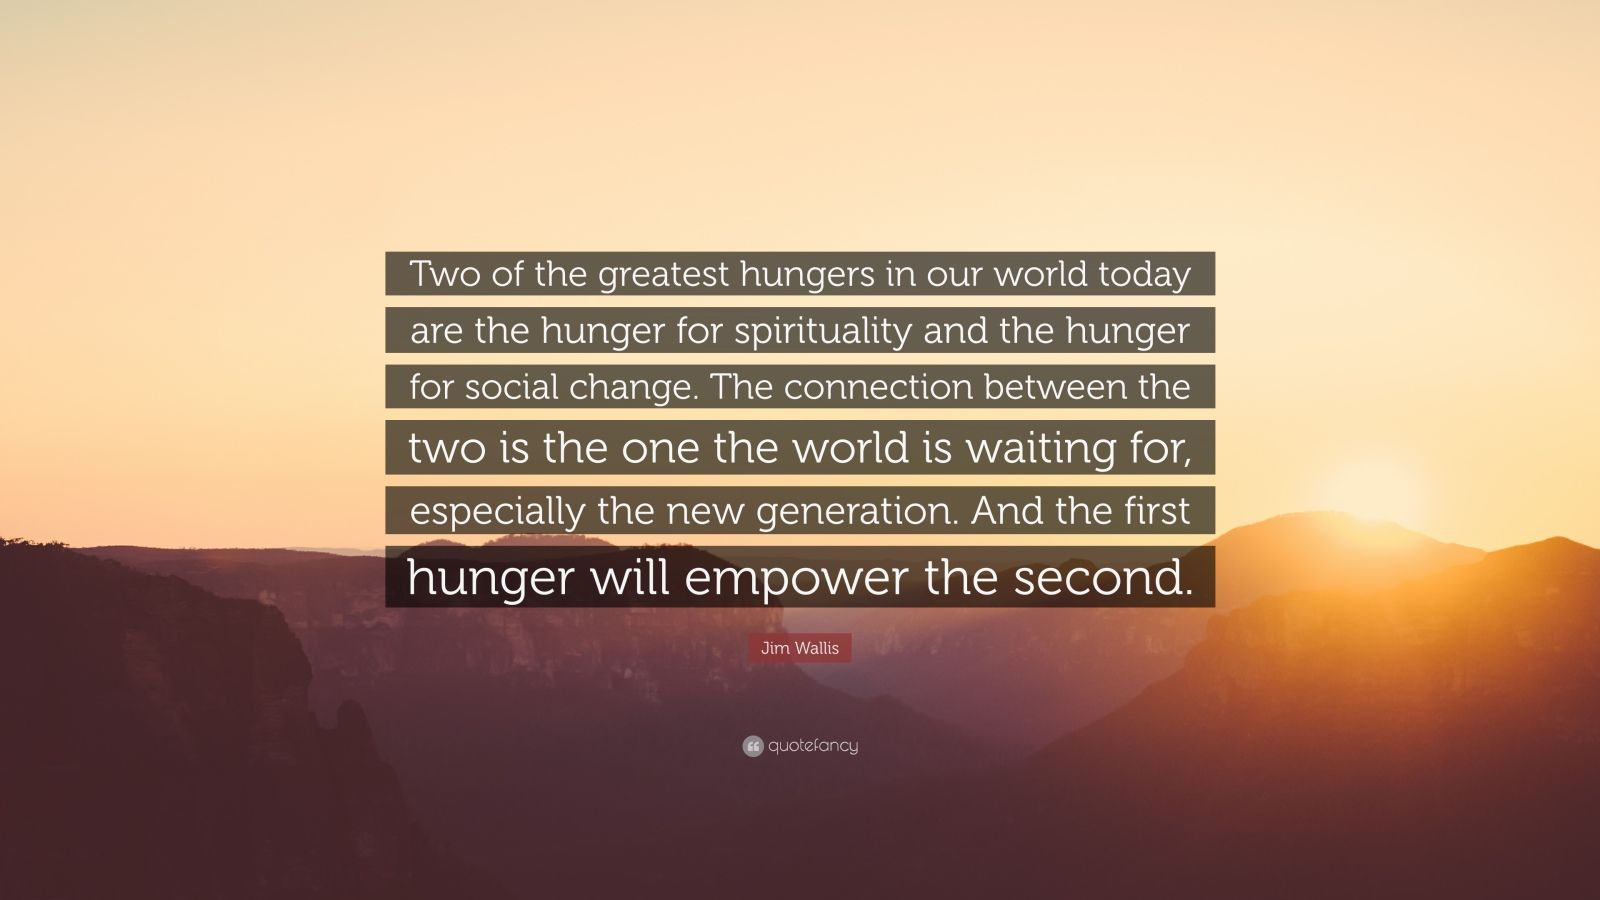 """Jim Wallis Quote: """"Two of the greatest hungers in our world today are the hunger for spirituality and the hunger for social change. The connection between the two is the one the world is waiting for, especially the new generation. And the first hunger will empower the second."""""""